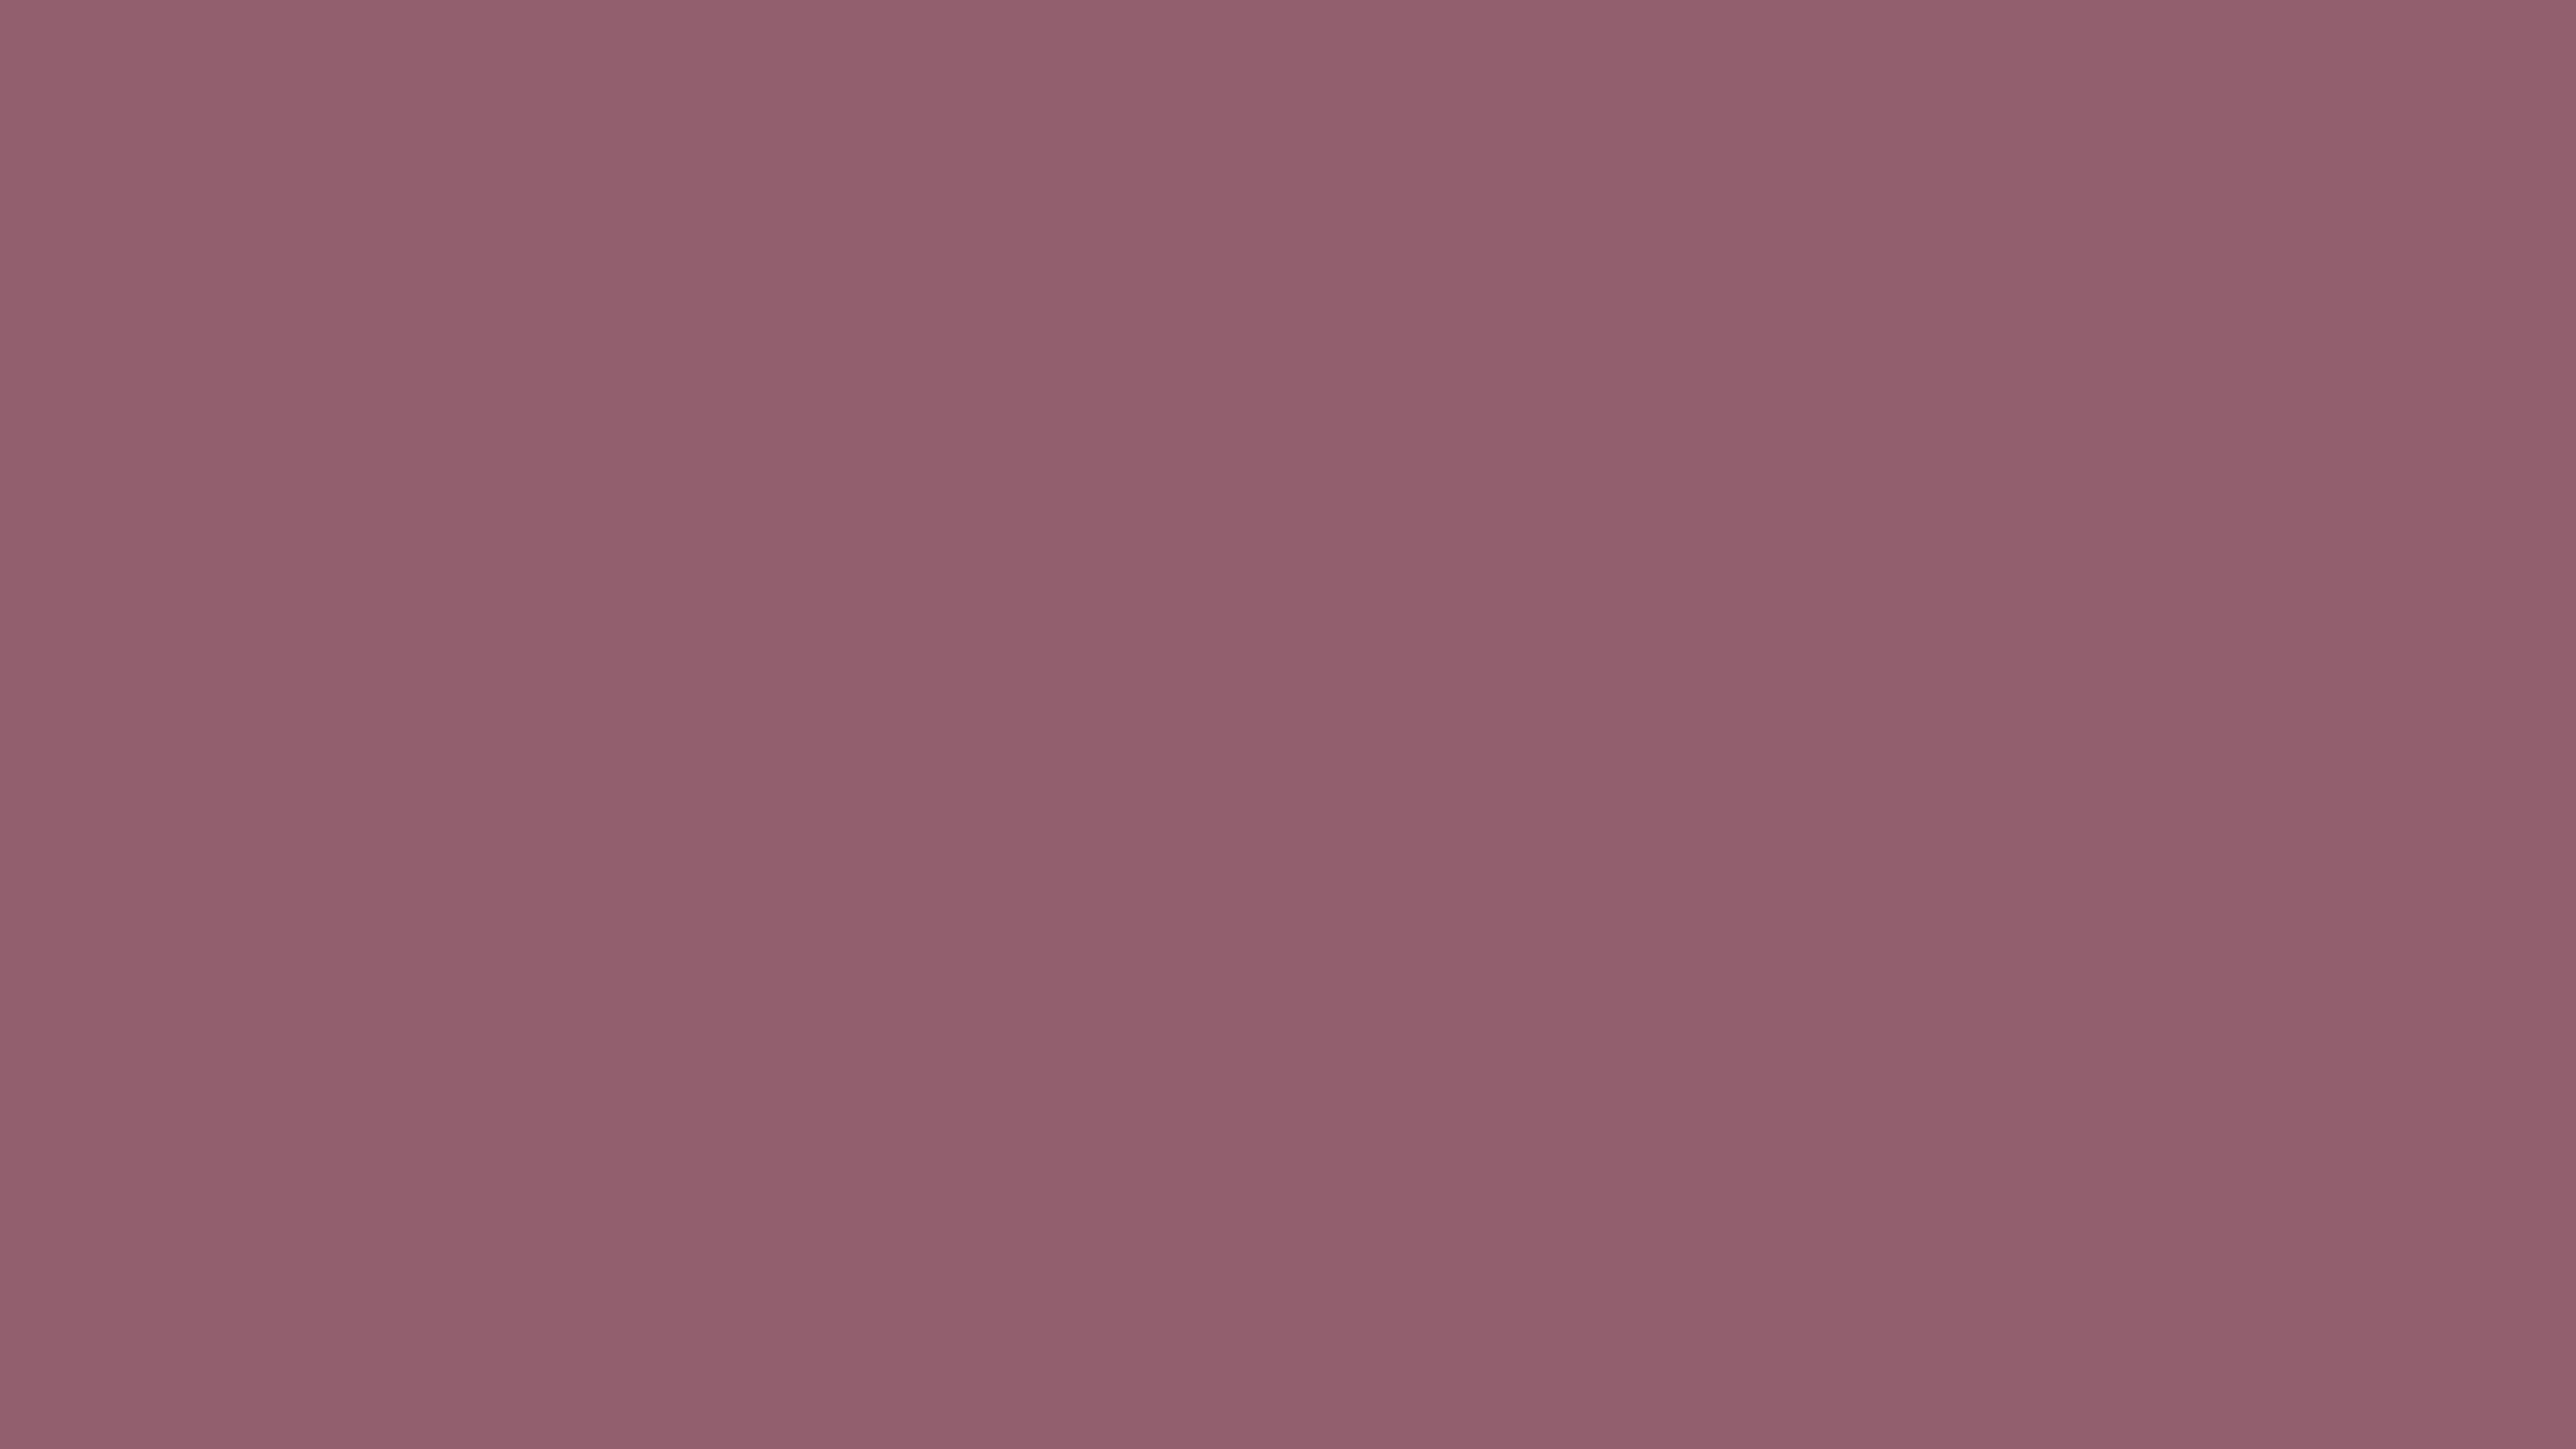 4096x2304 Mauve Taupe Solid Color Background